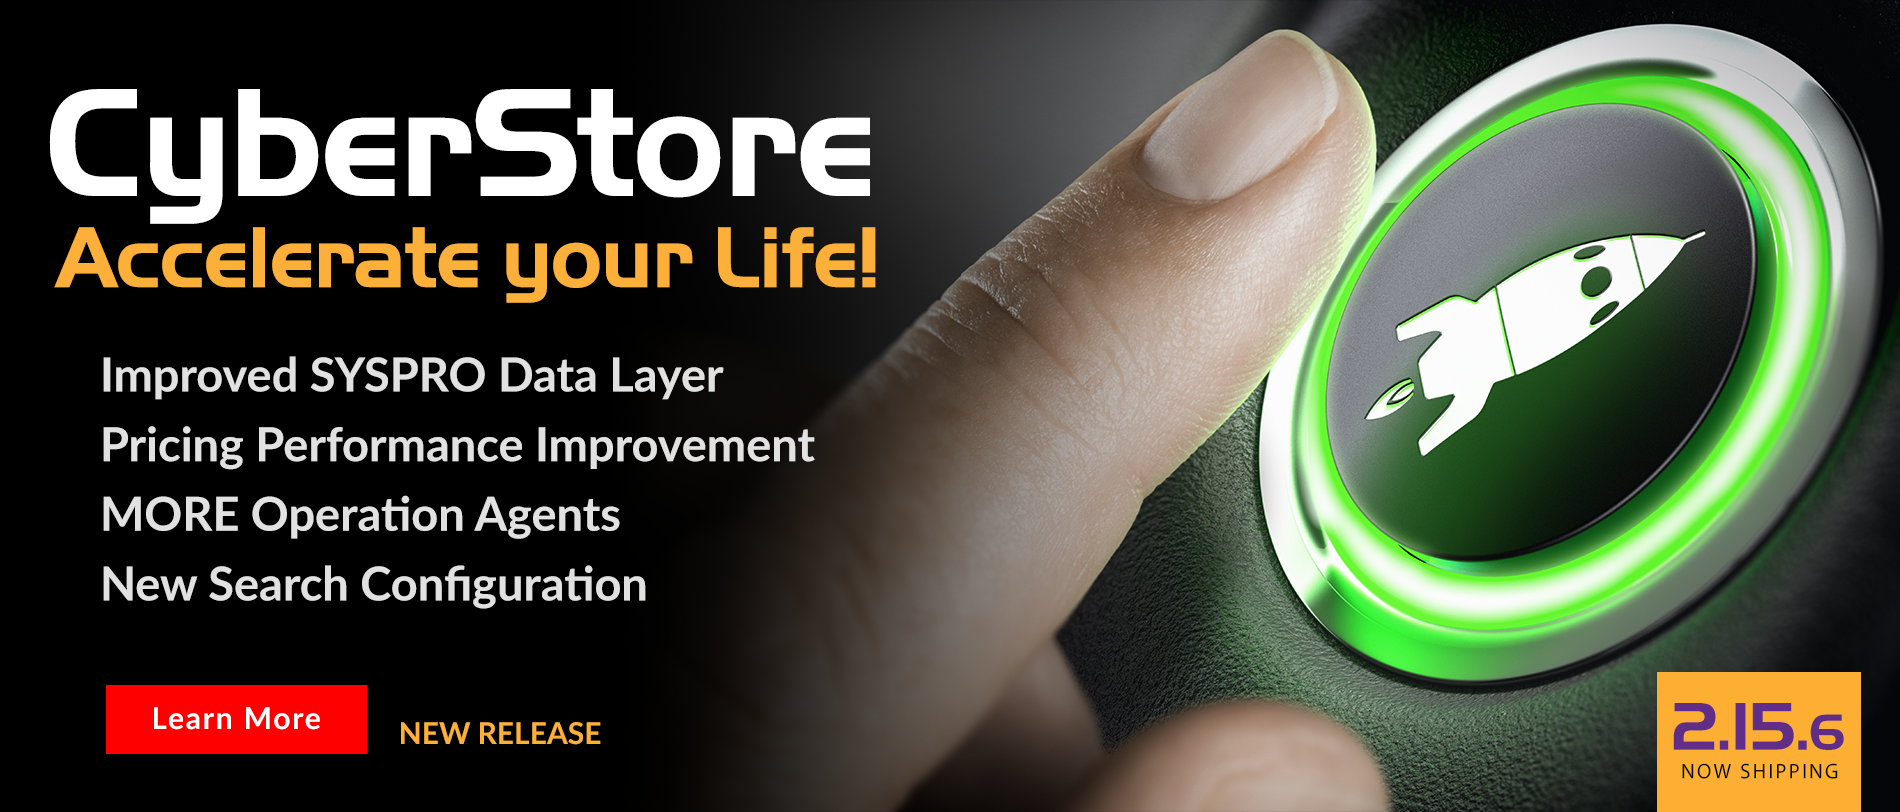 Feel the Power of CyberStore version 2.15.6 Accelerate your life